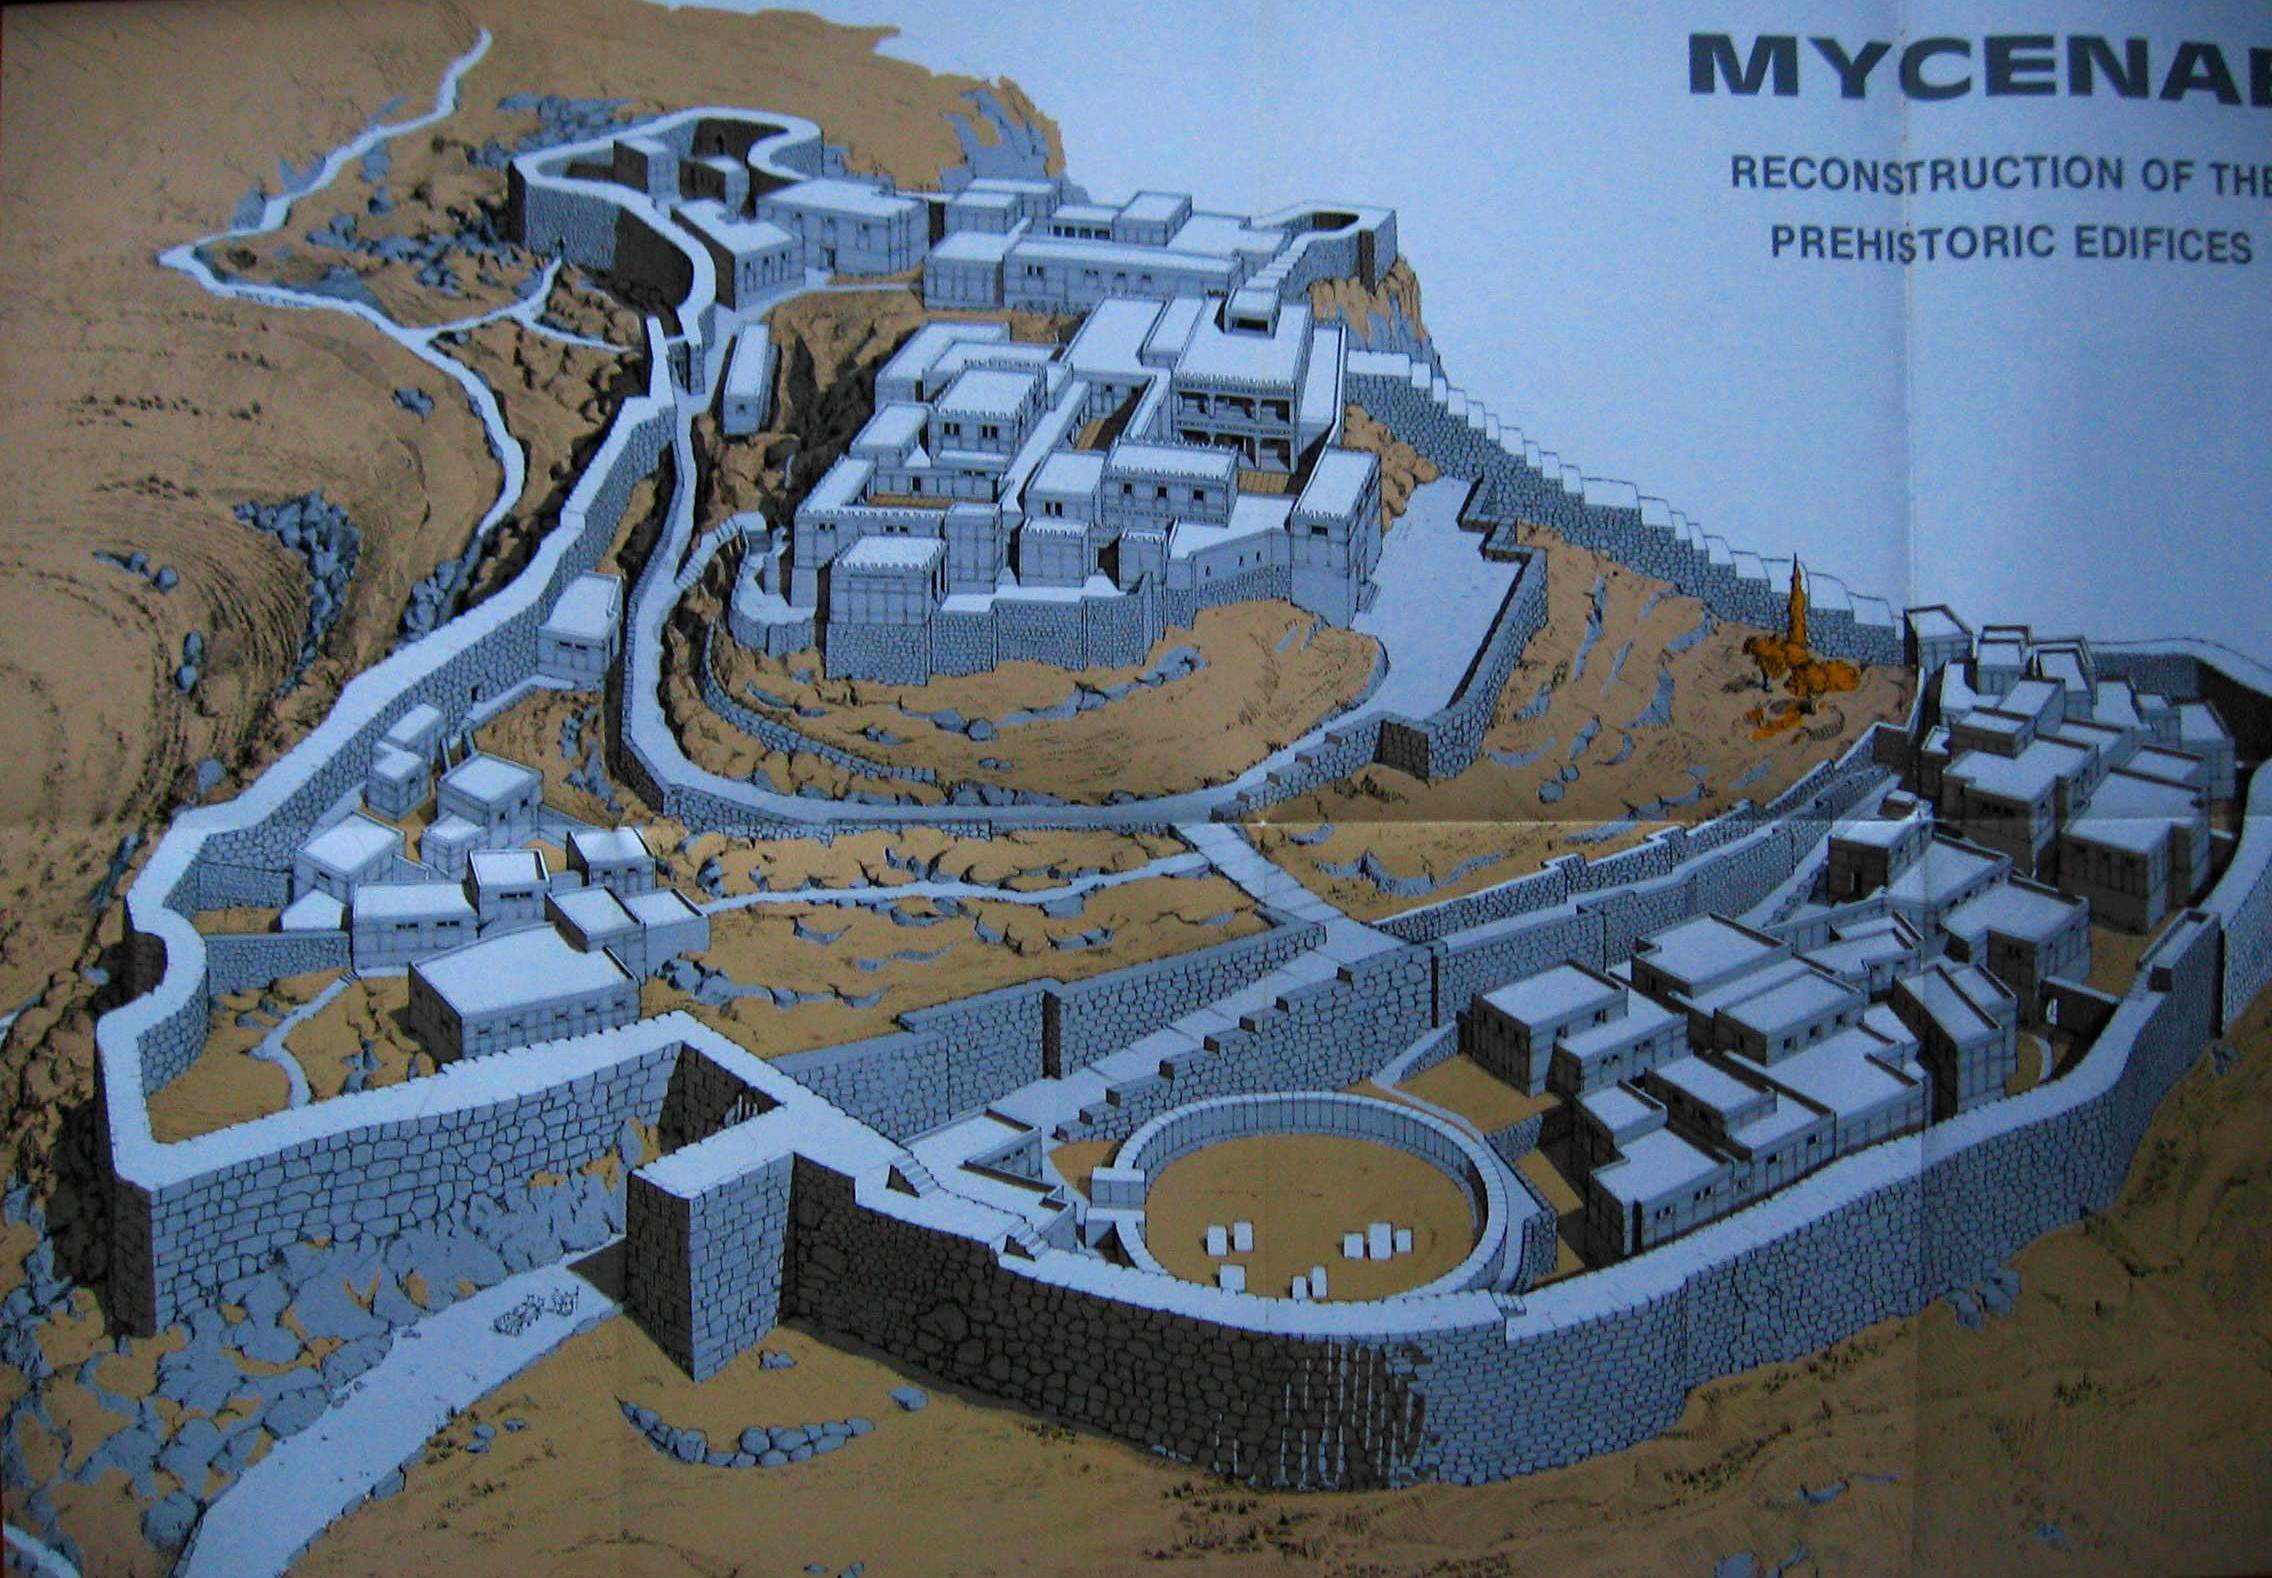 Mycenae map